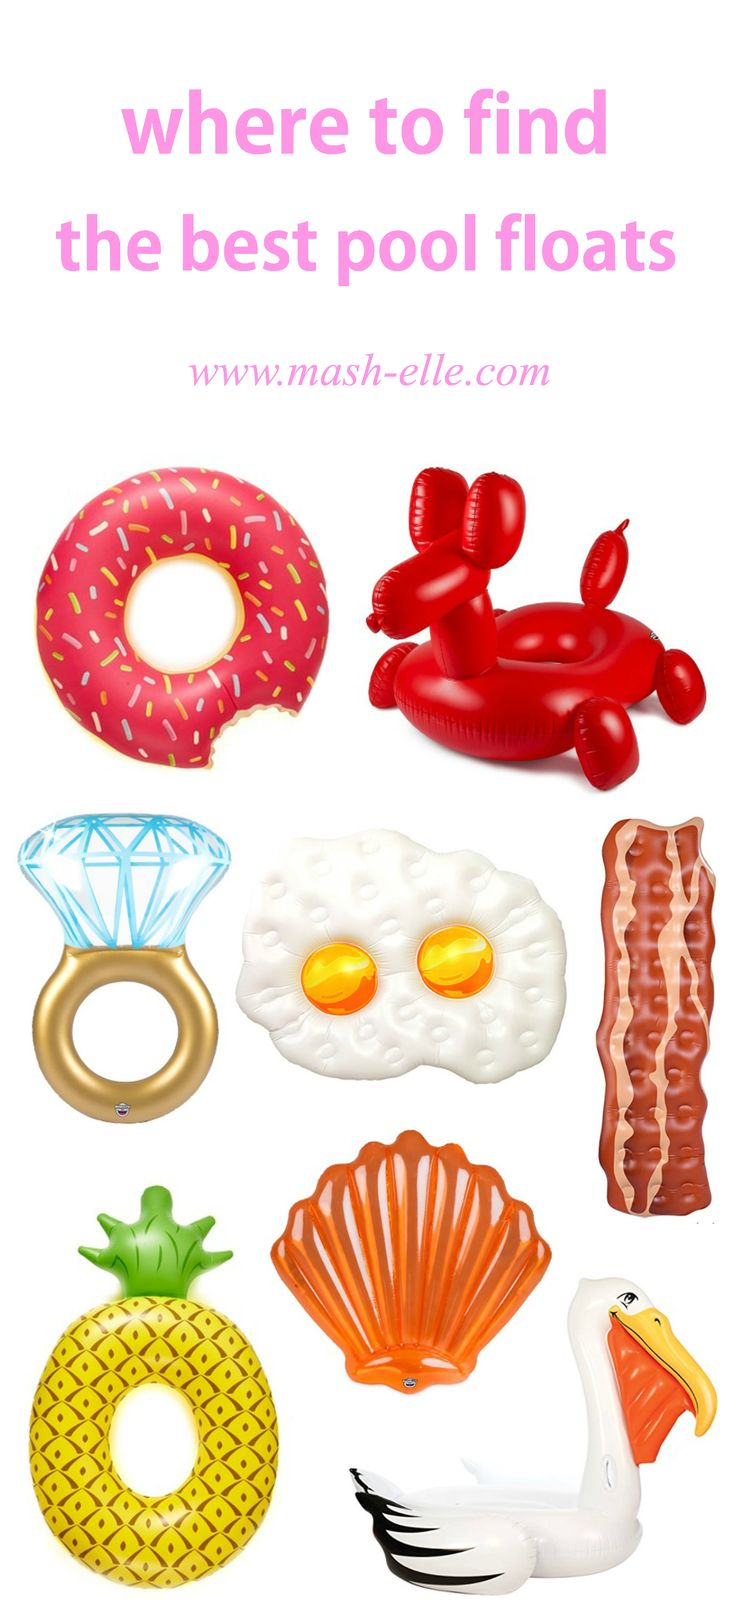 Morning clipart pool toy Floats adults on Best 25+